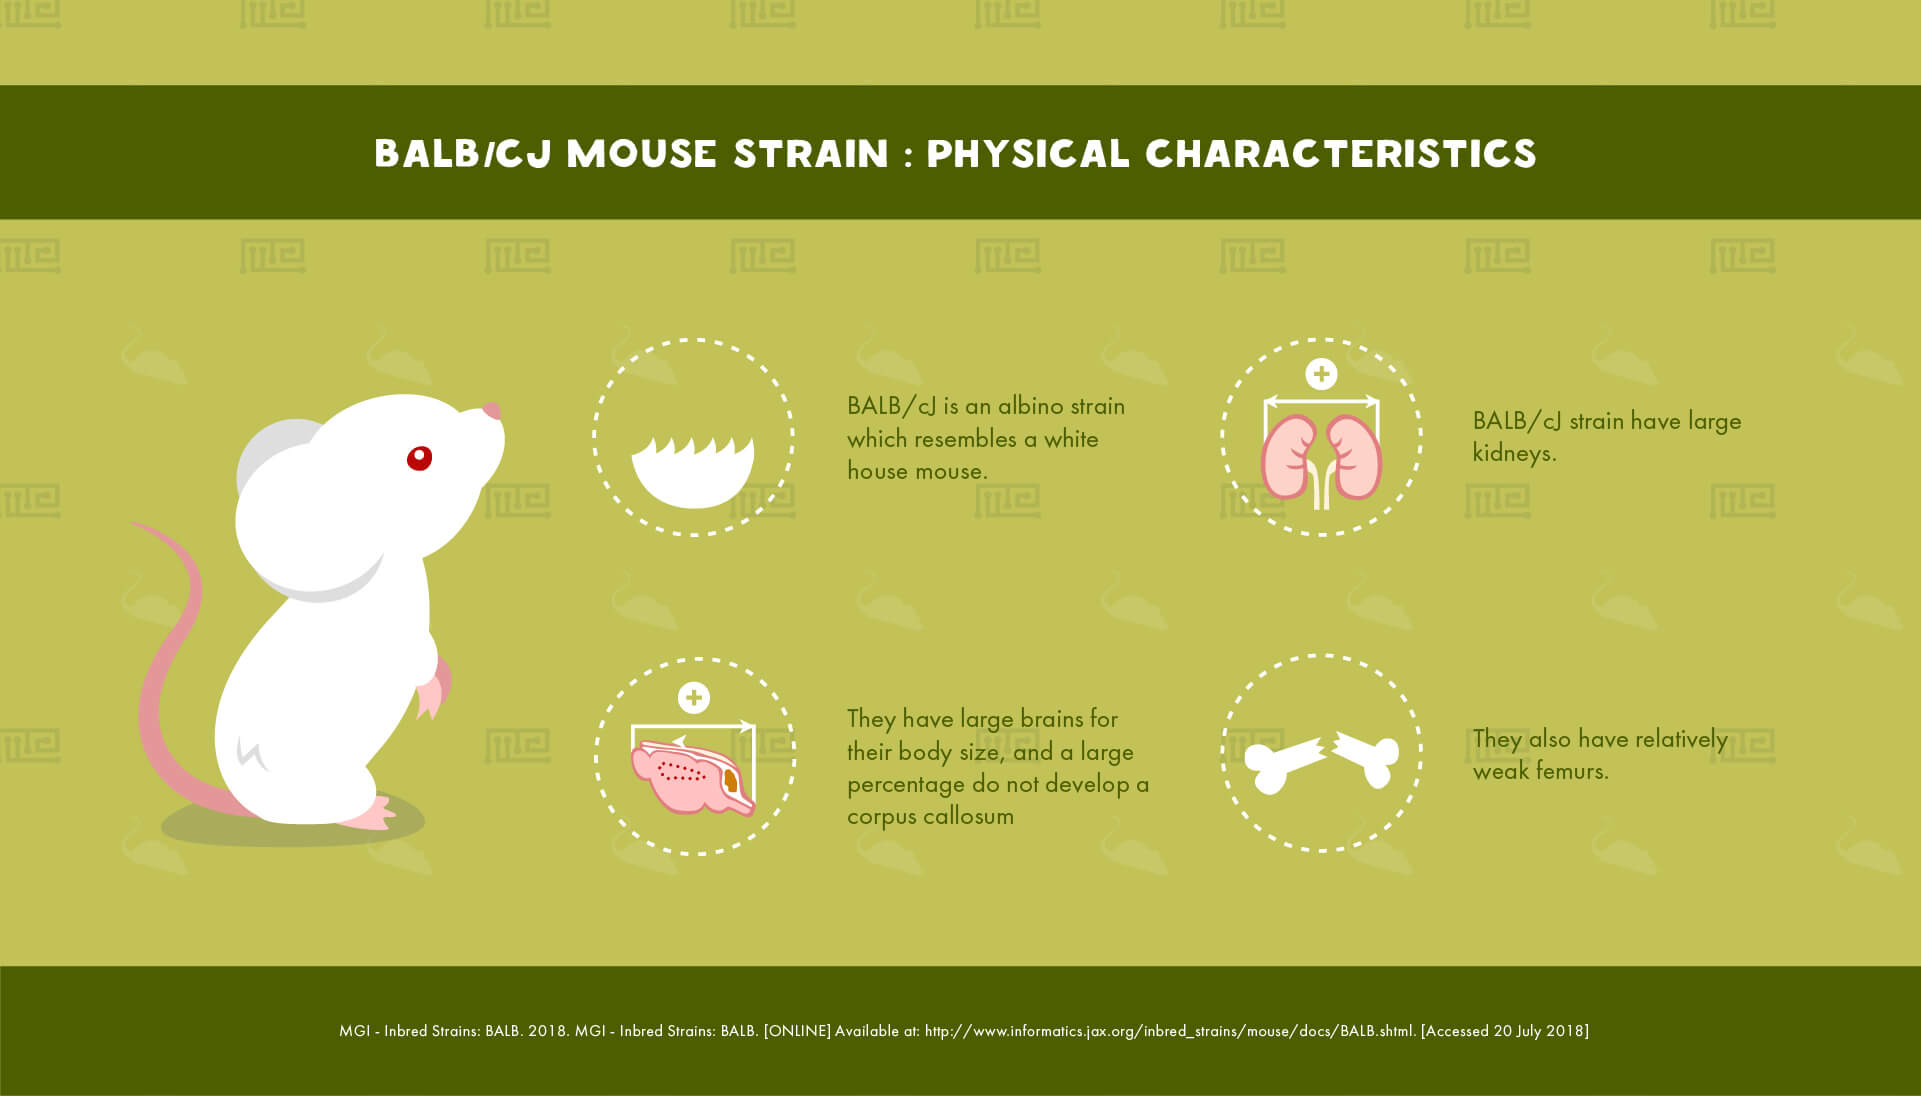 BALB/CJ Mouse Strain : Physical Characteristics